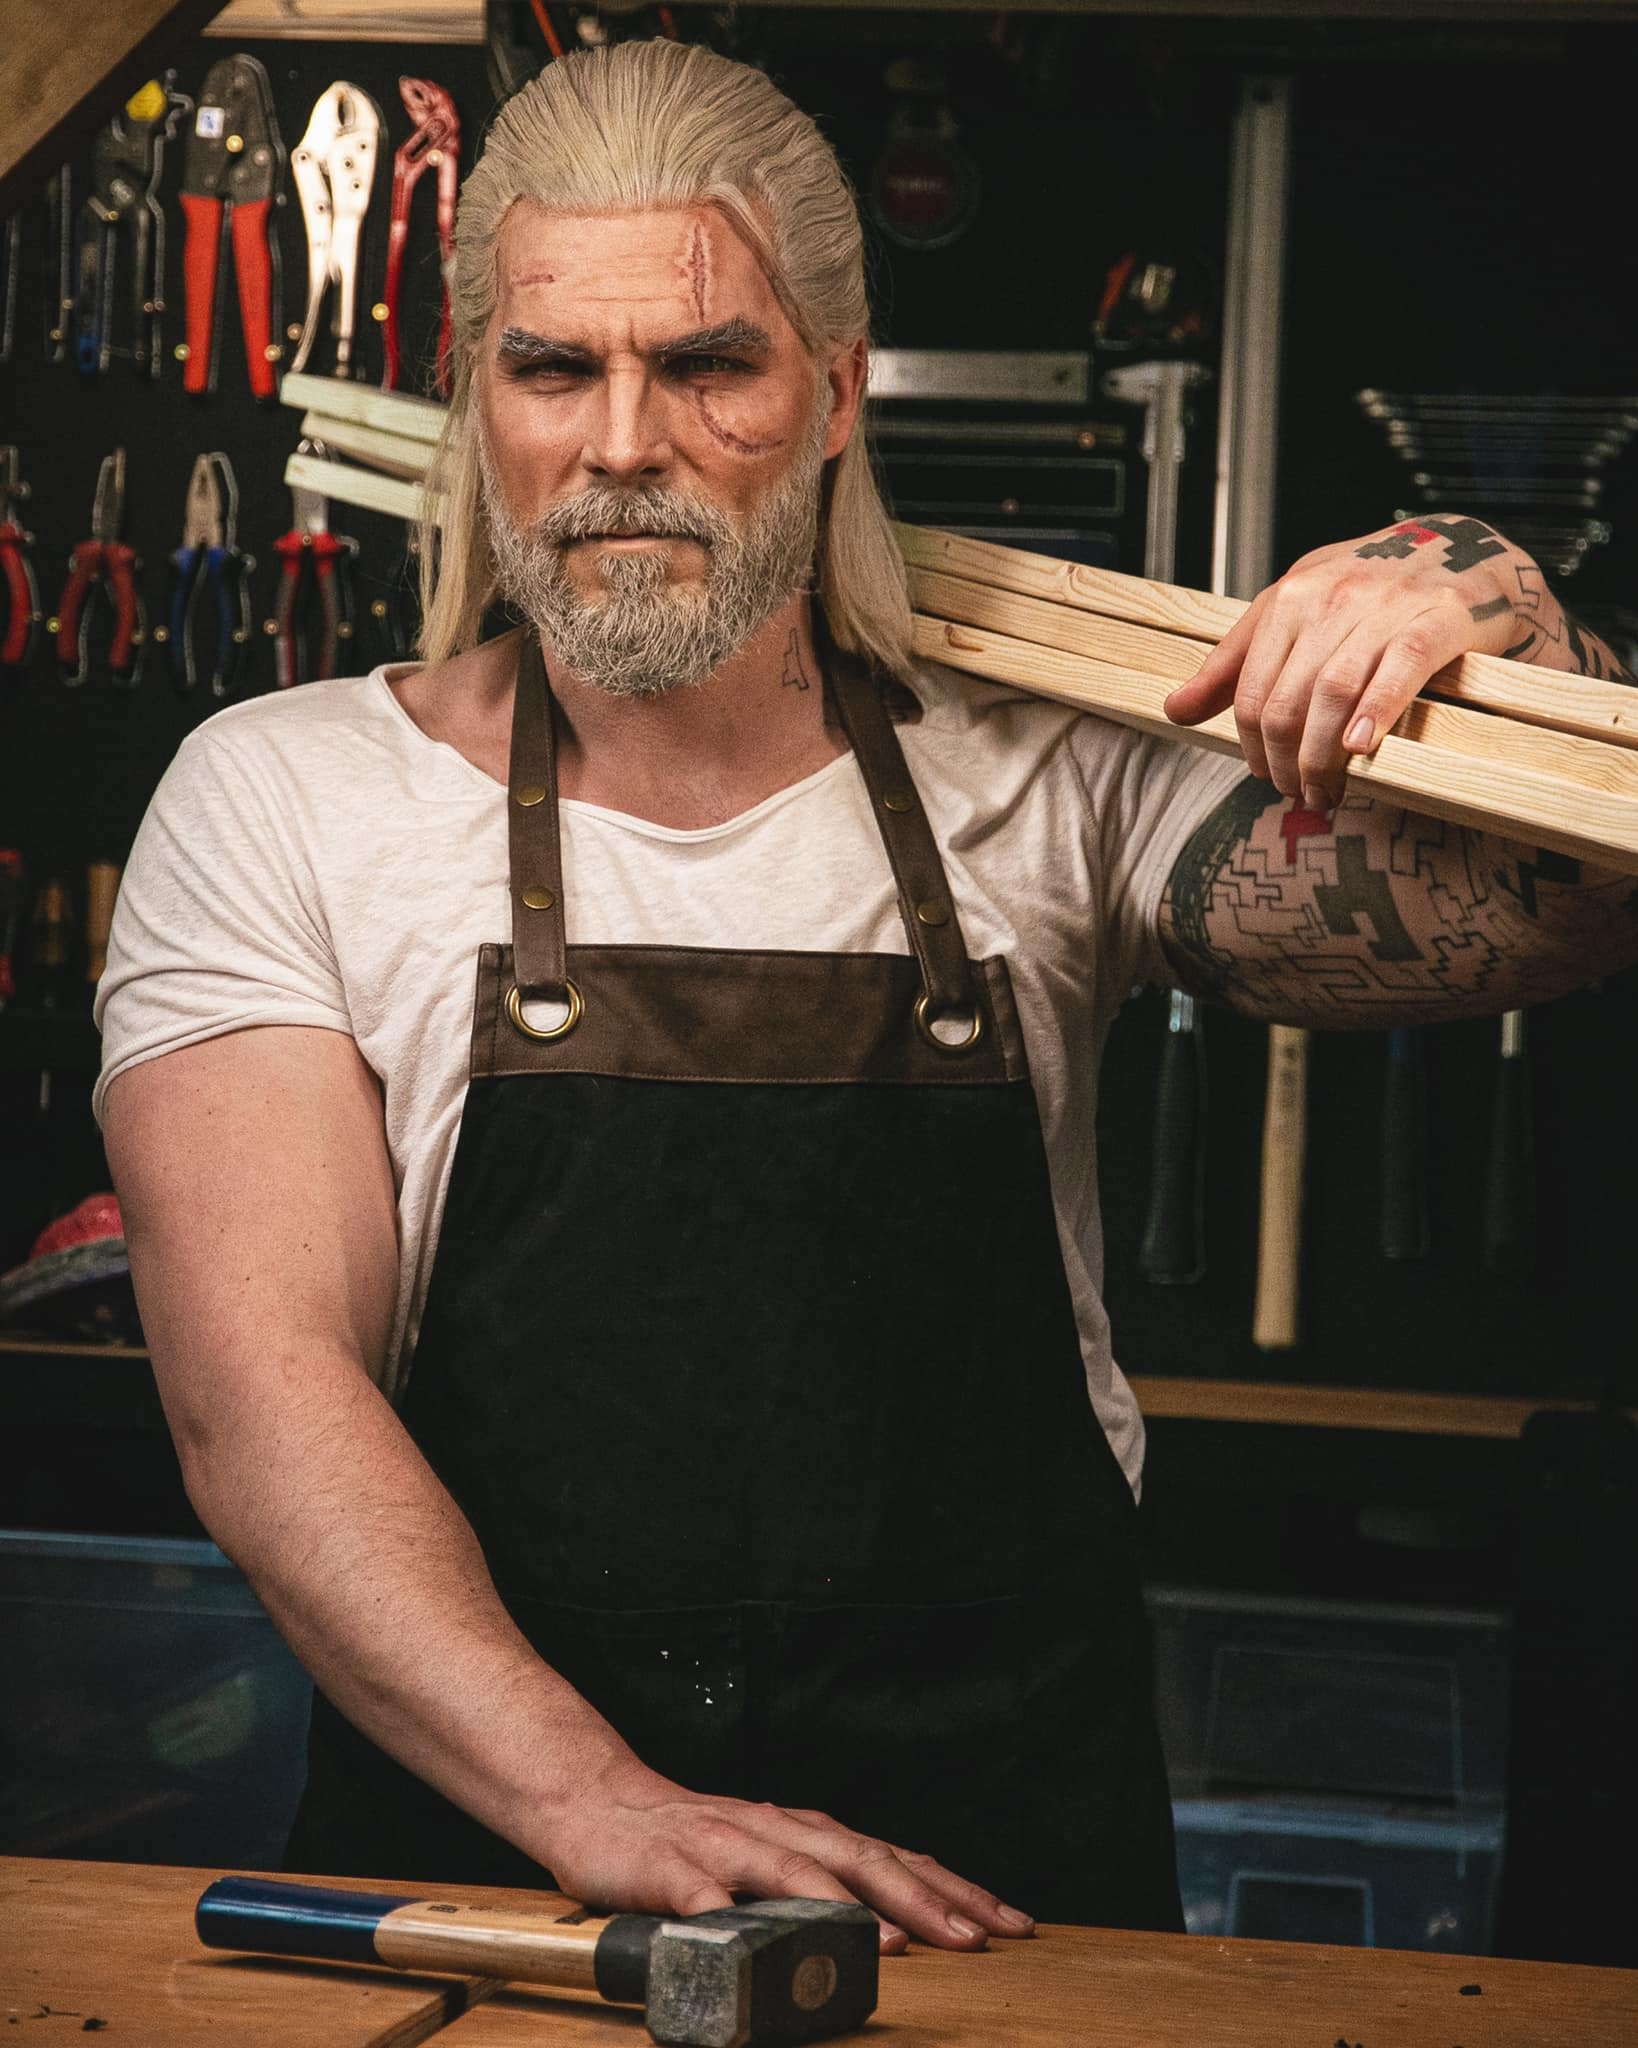 Maul Cosplay Geralt of Rivia The Witcher Carpenter